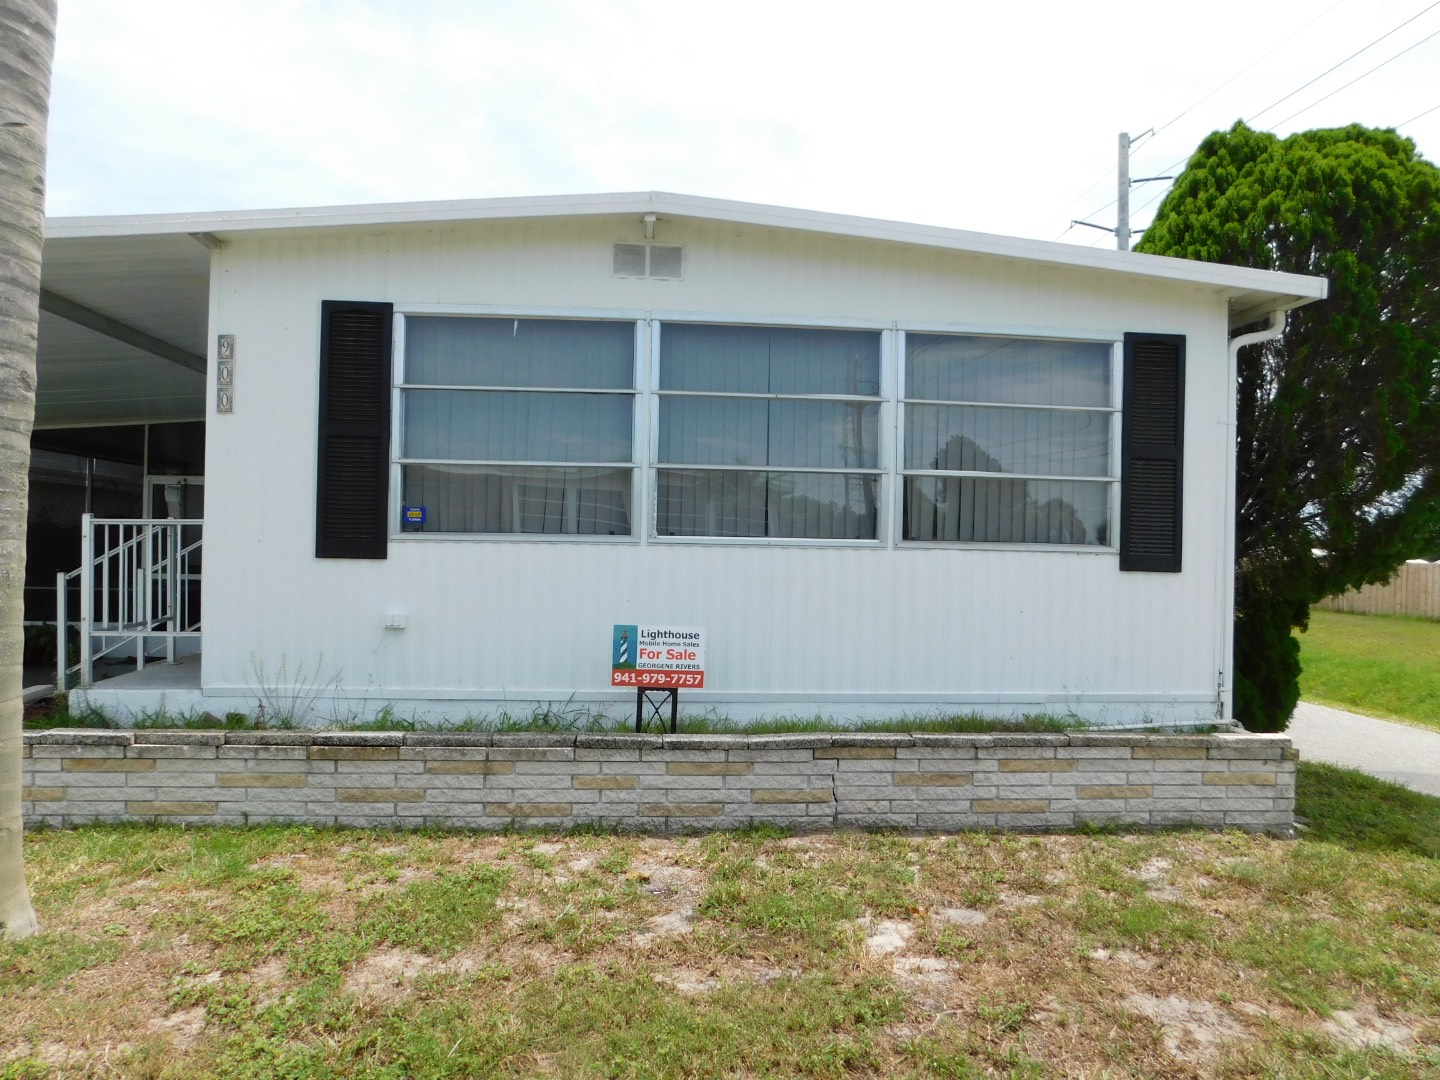 900 Posadas West Venice Fl 34285 For Sale Mystatemls Listing